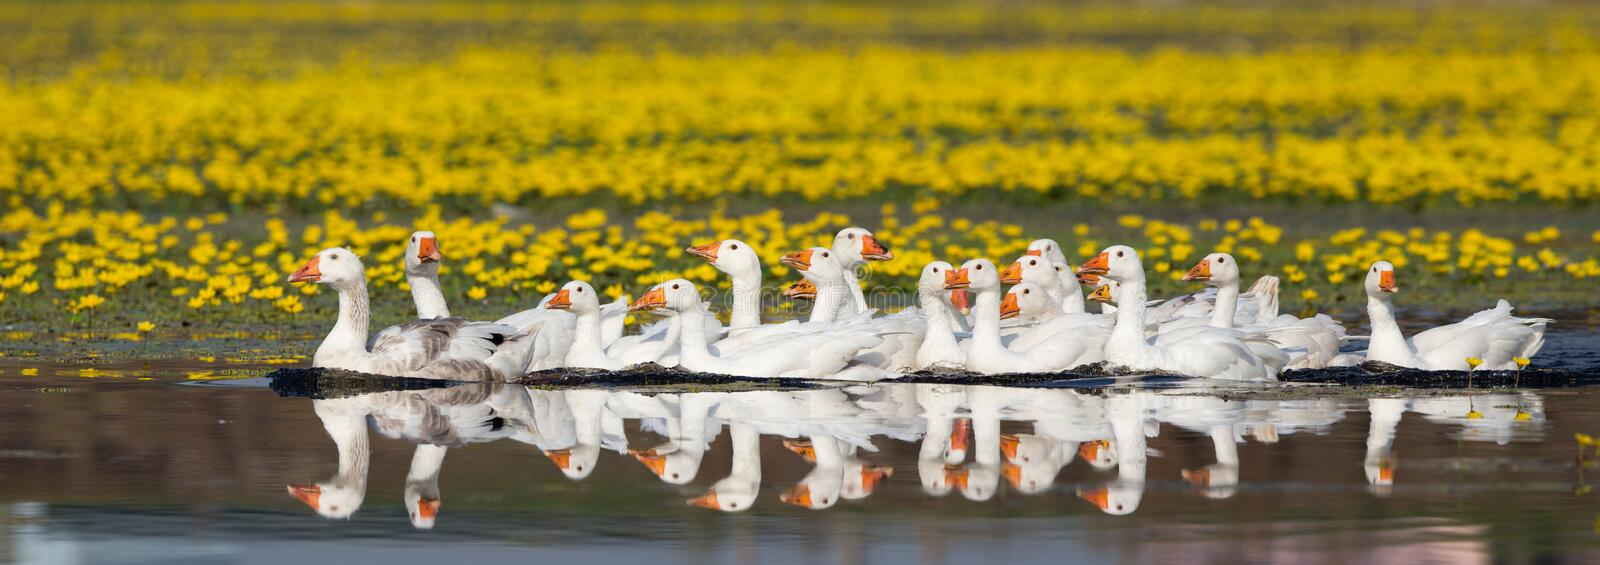 Domestic geese flock on the lake. Group of white domestic geese swimming on the lake with yellow flowers on meadow in background royalty free stock photography